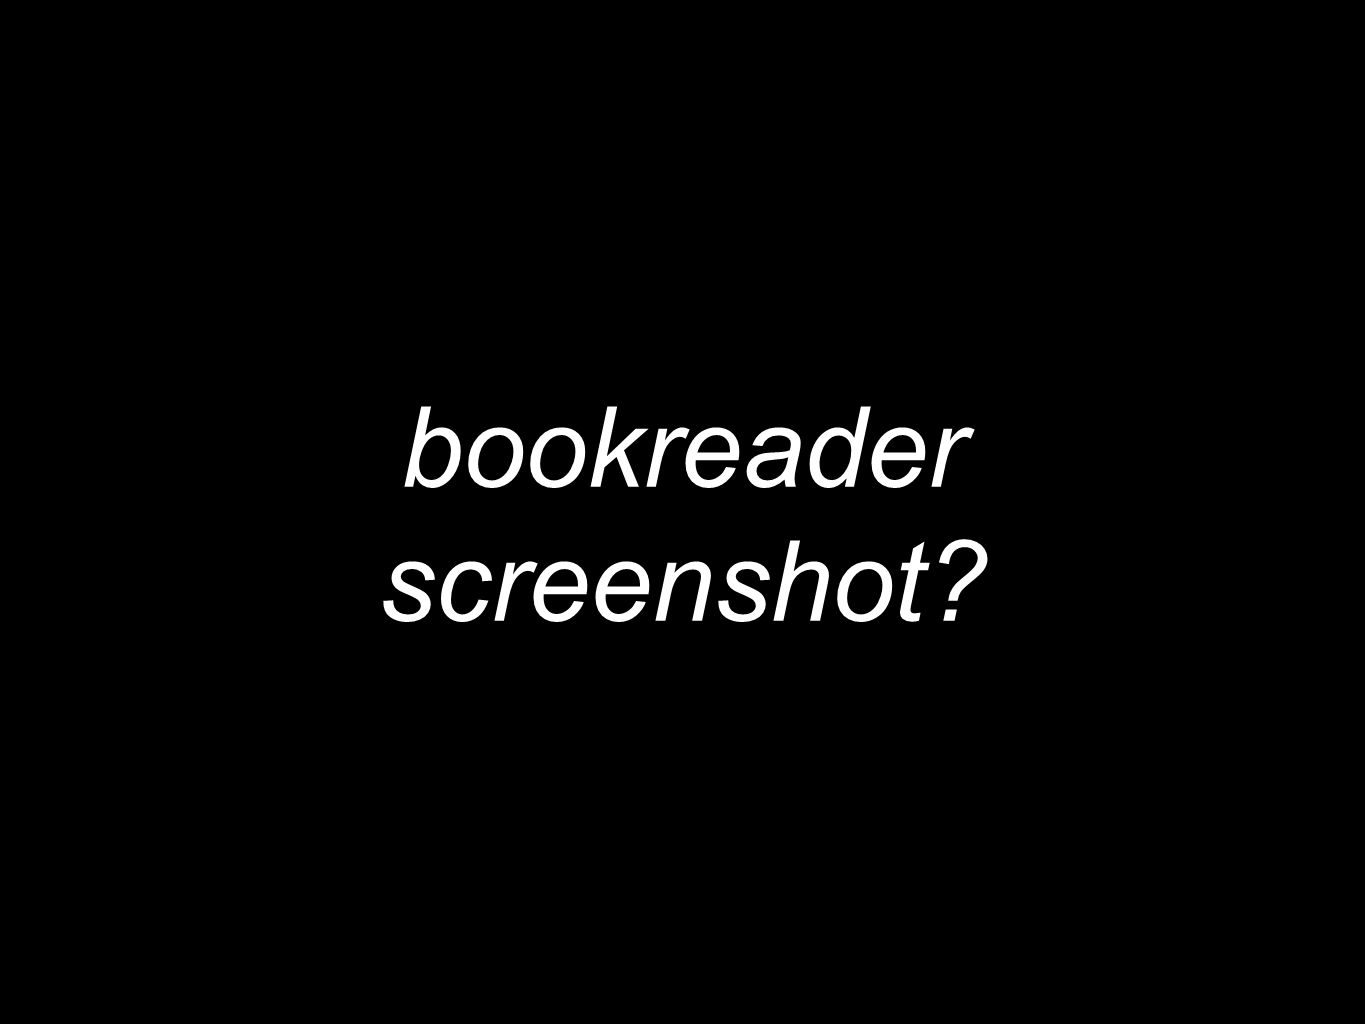 bookreader screenshot?